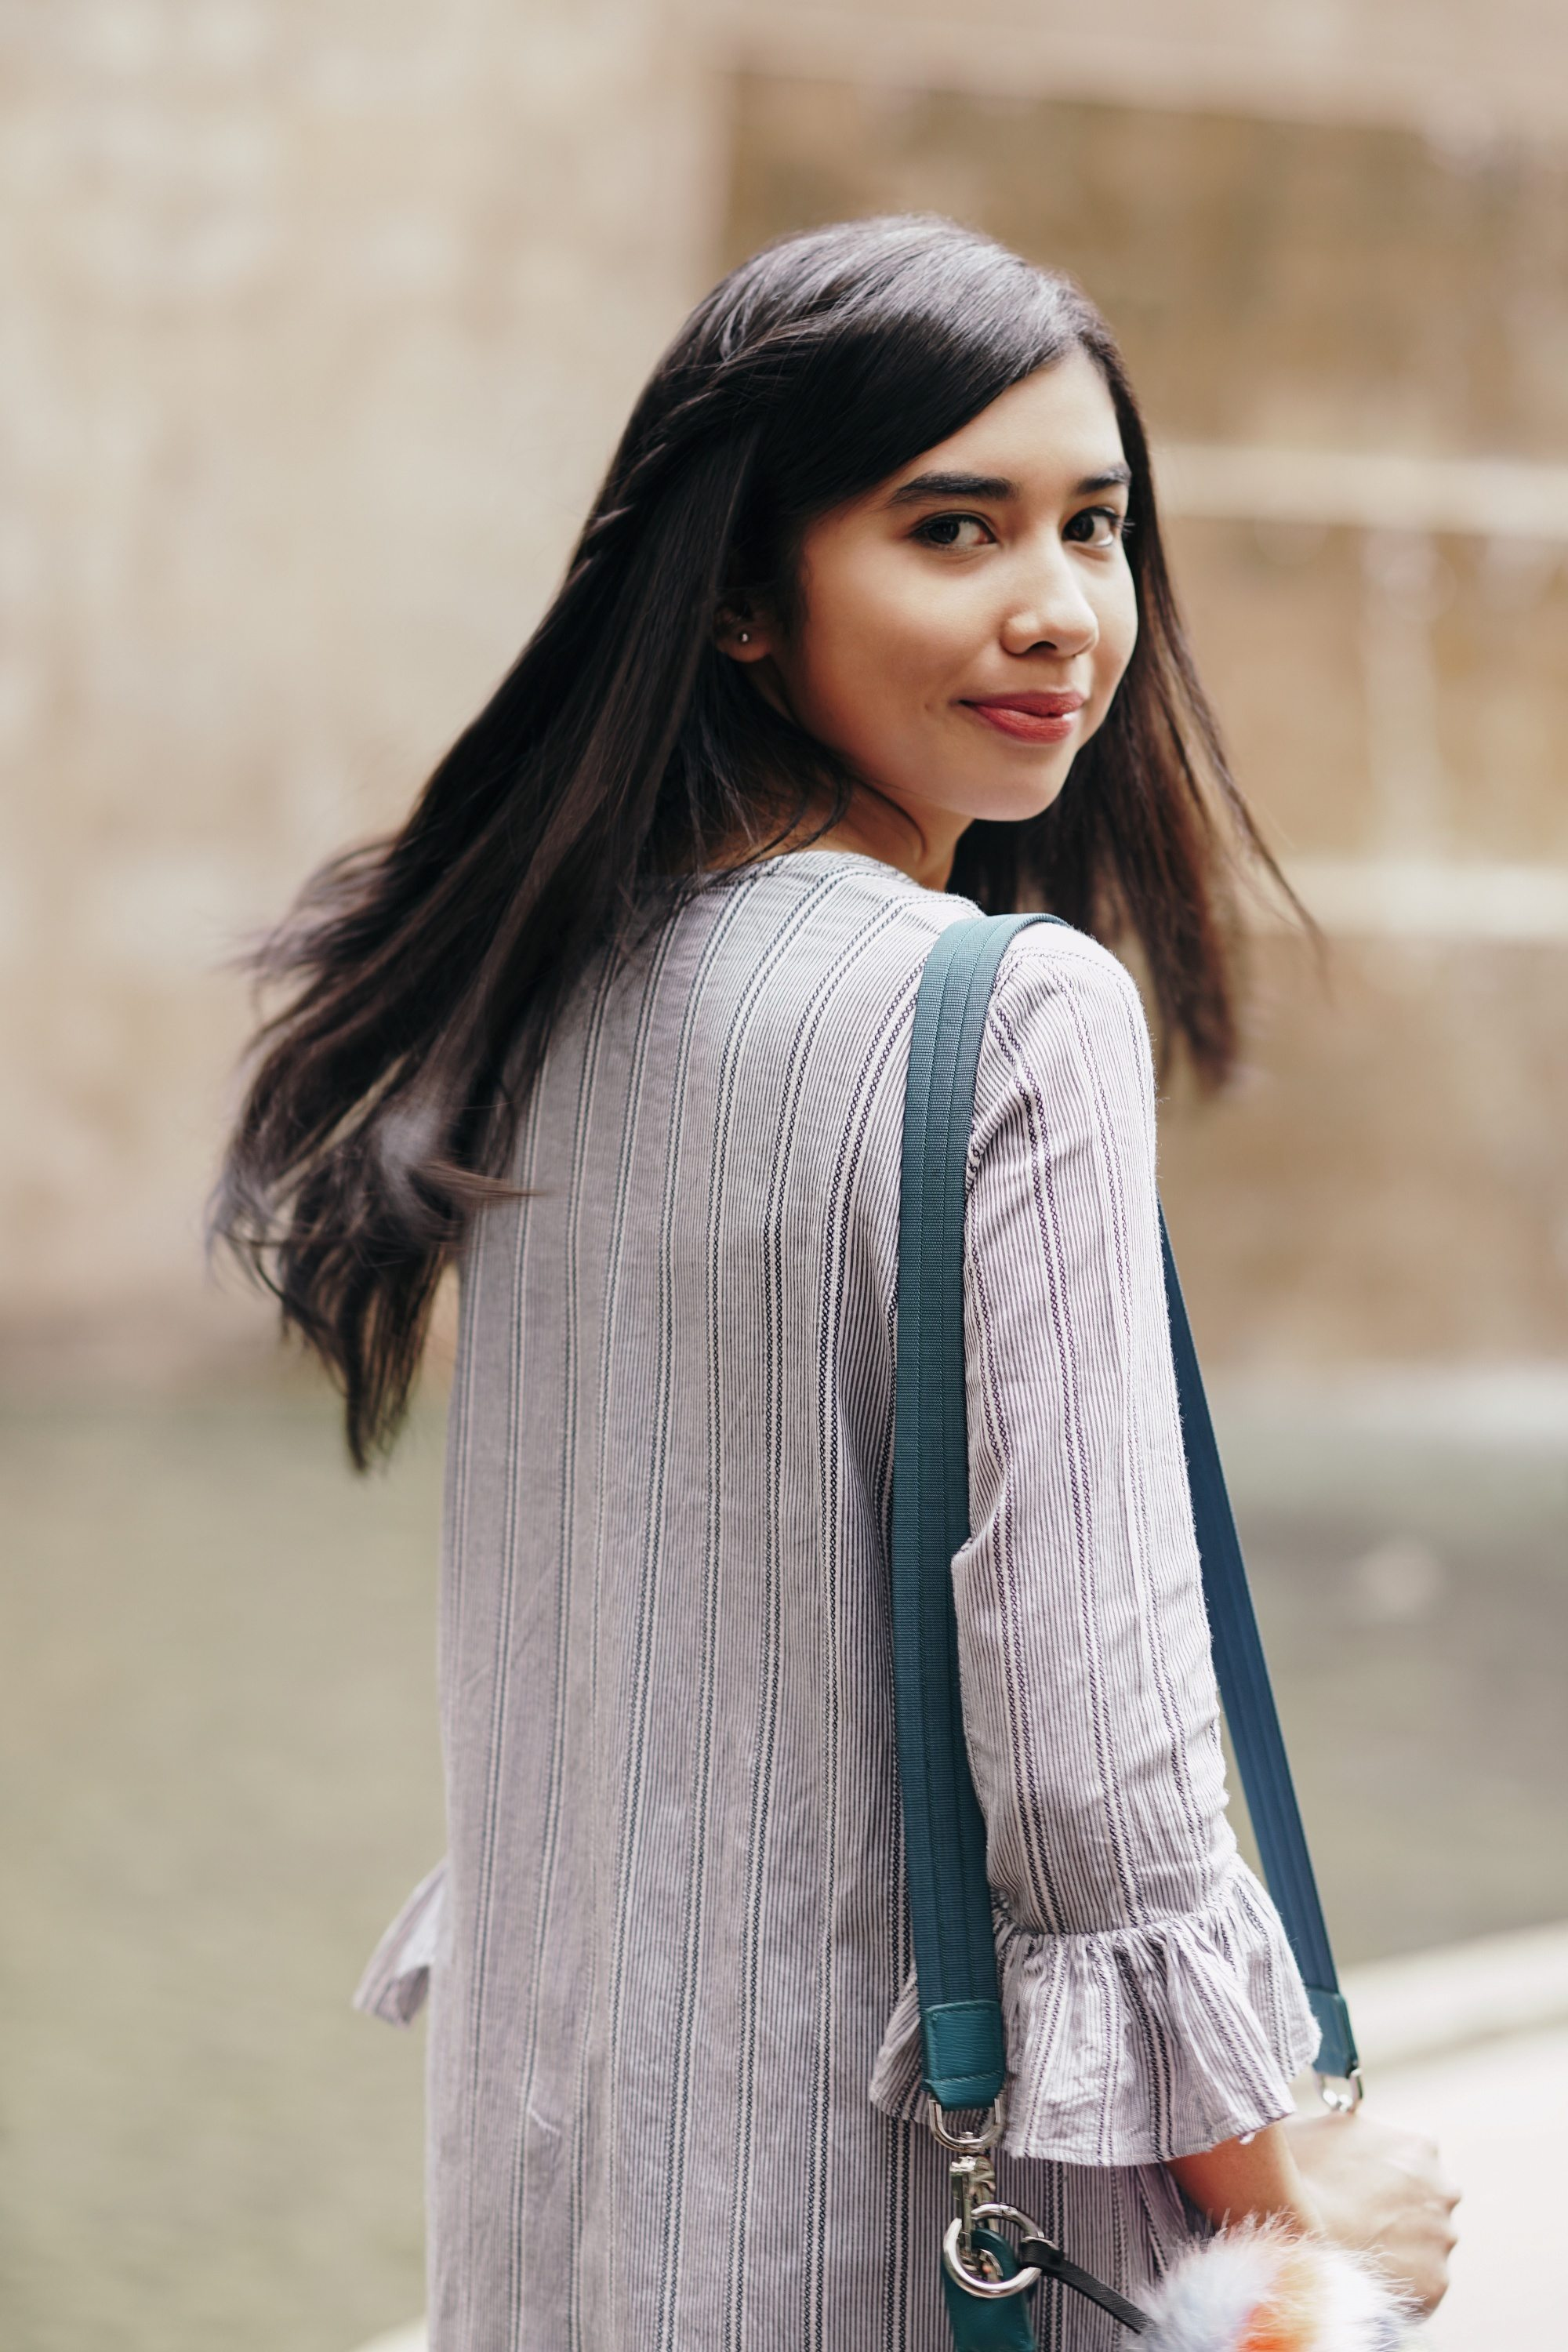 Asian woman with long black layered hair wearing a cardigan